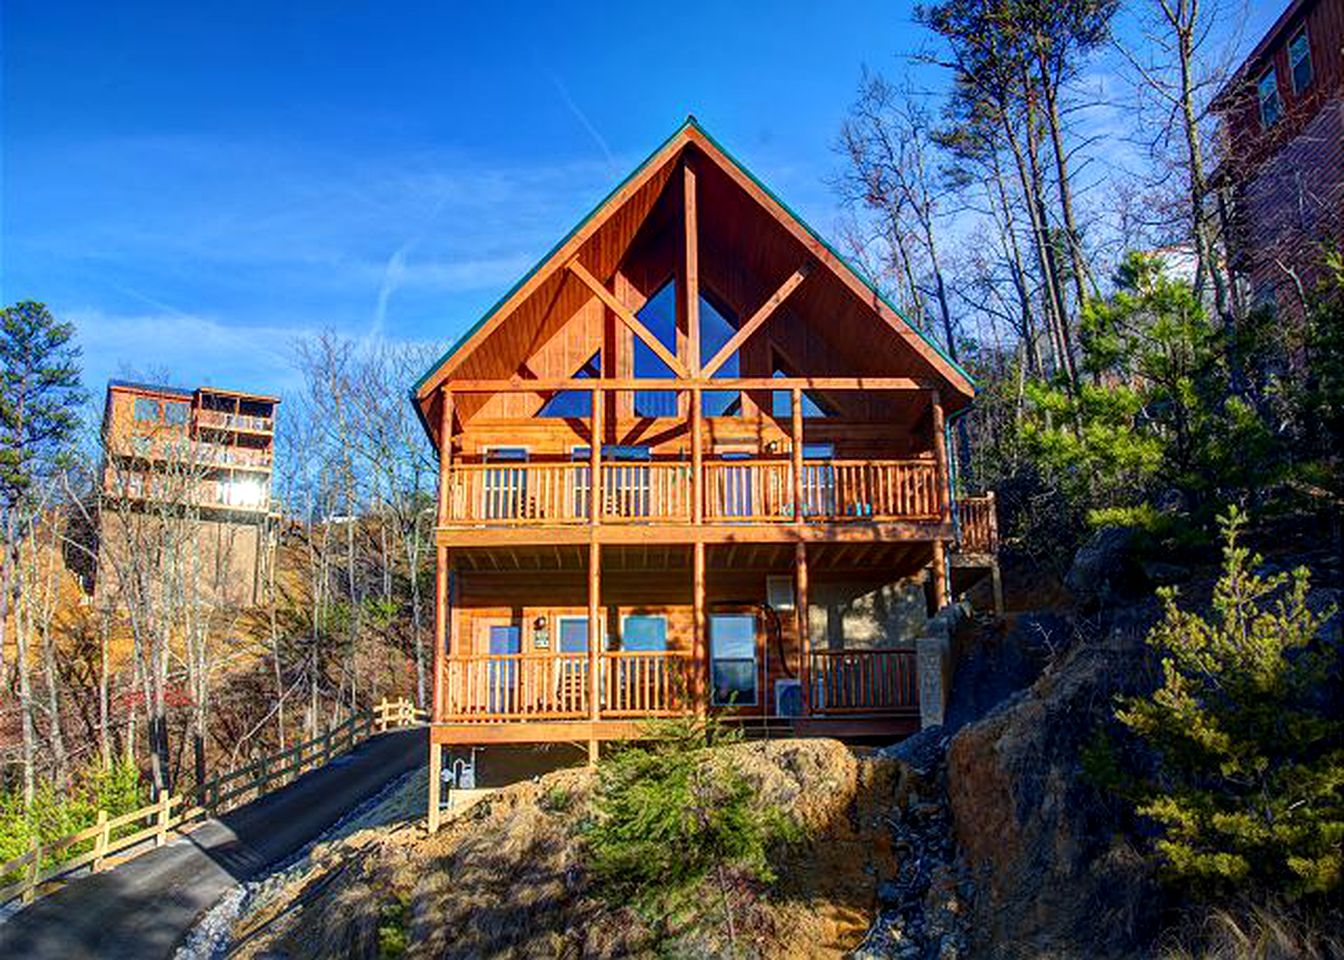 Luxury Dollywood cabins with indoor pools (Pigeon Forge, Tennessee, United States)